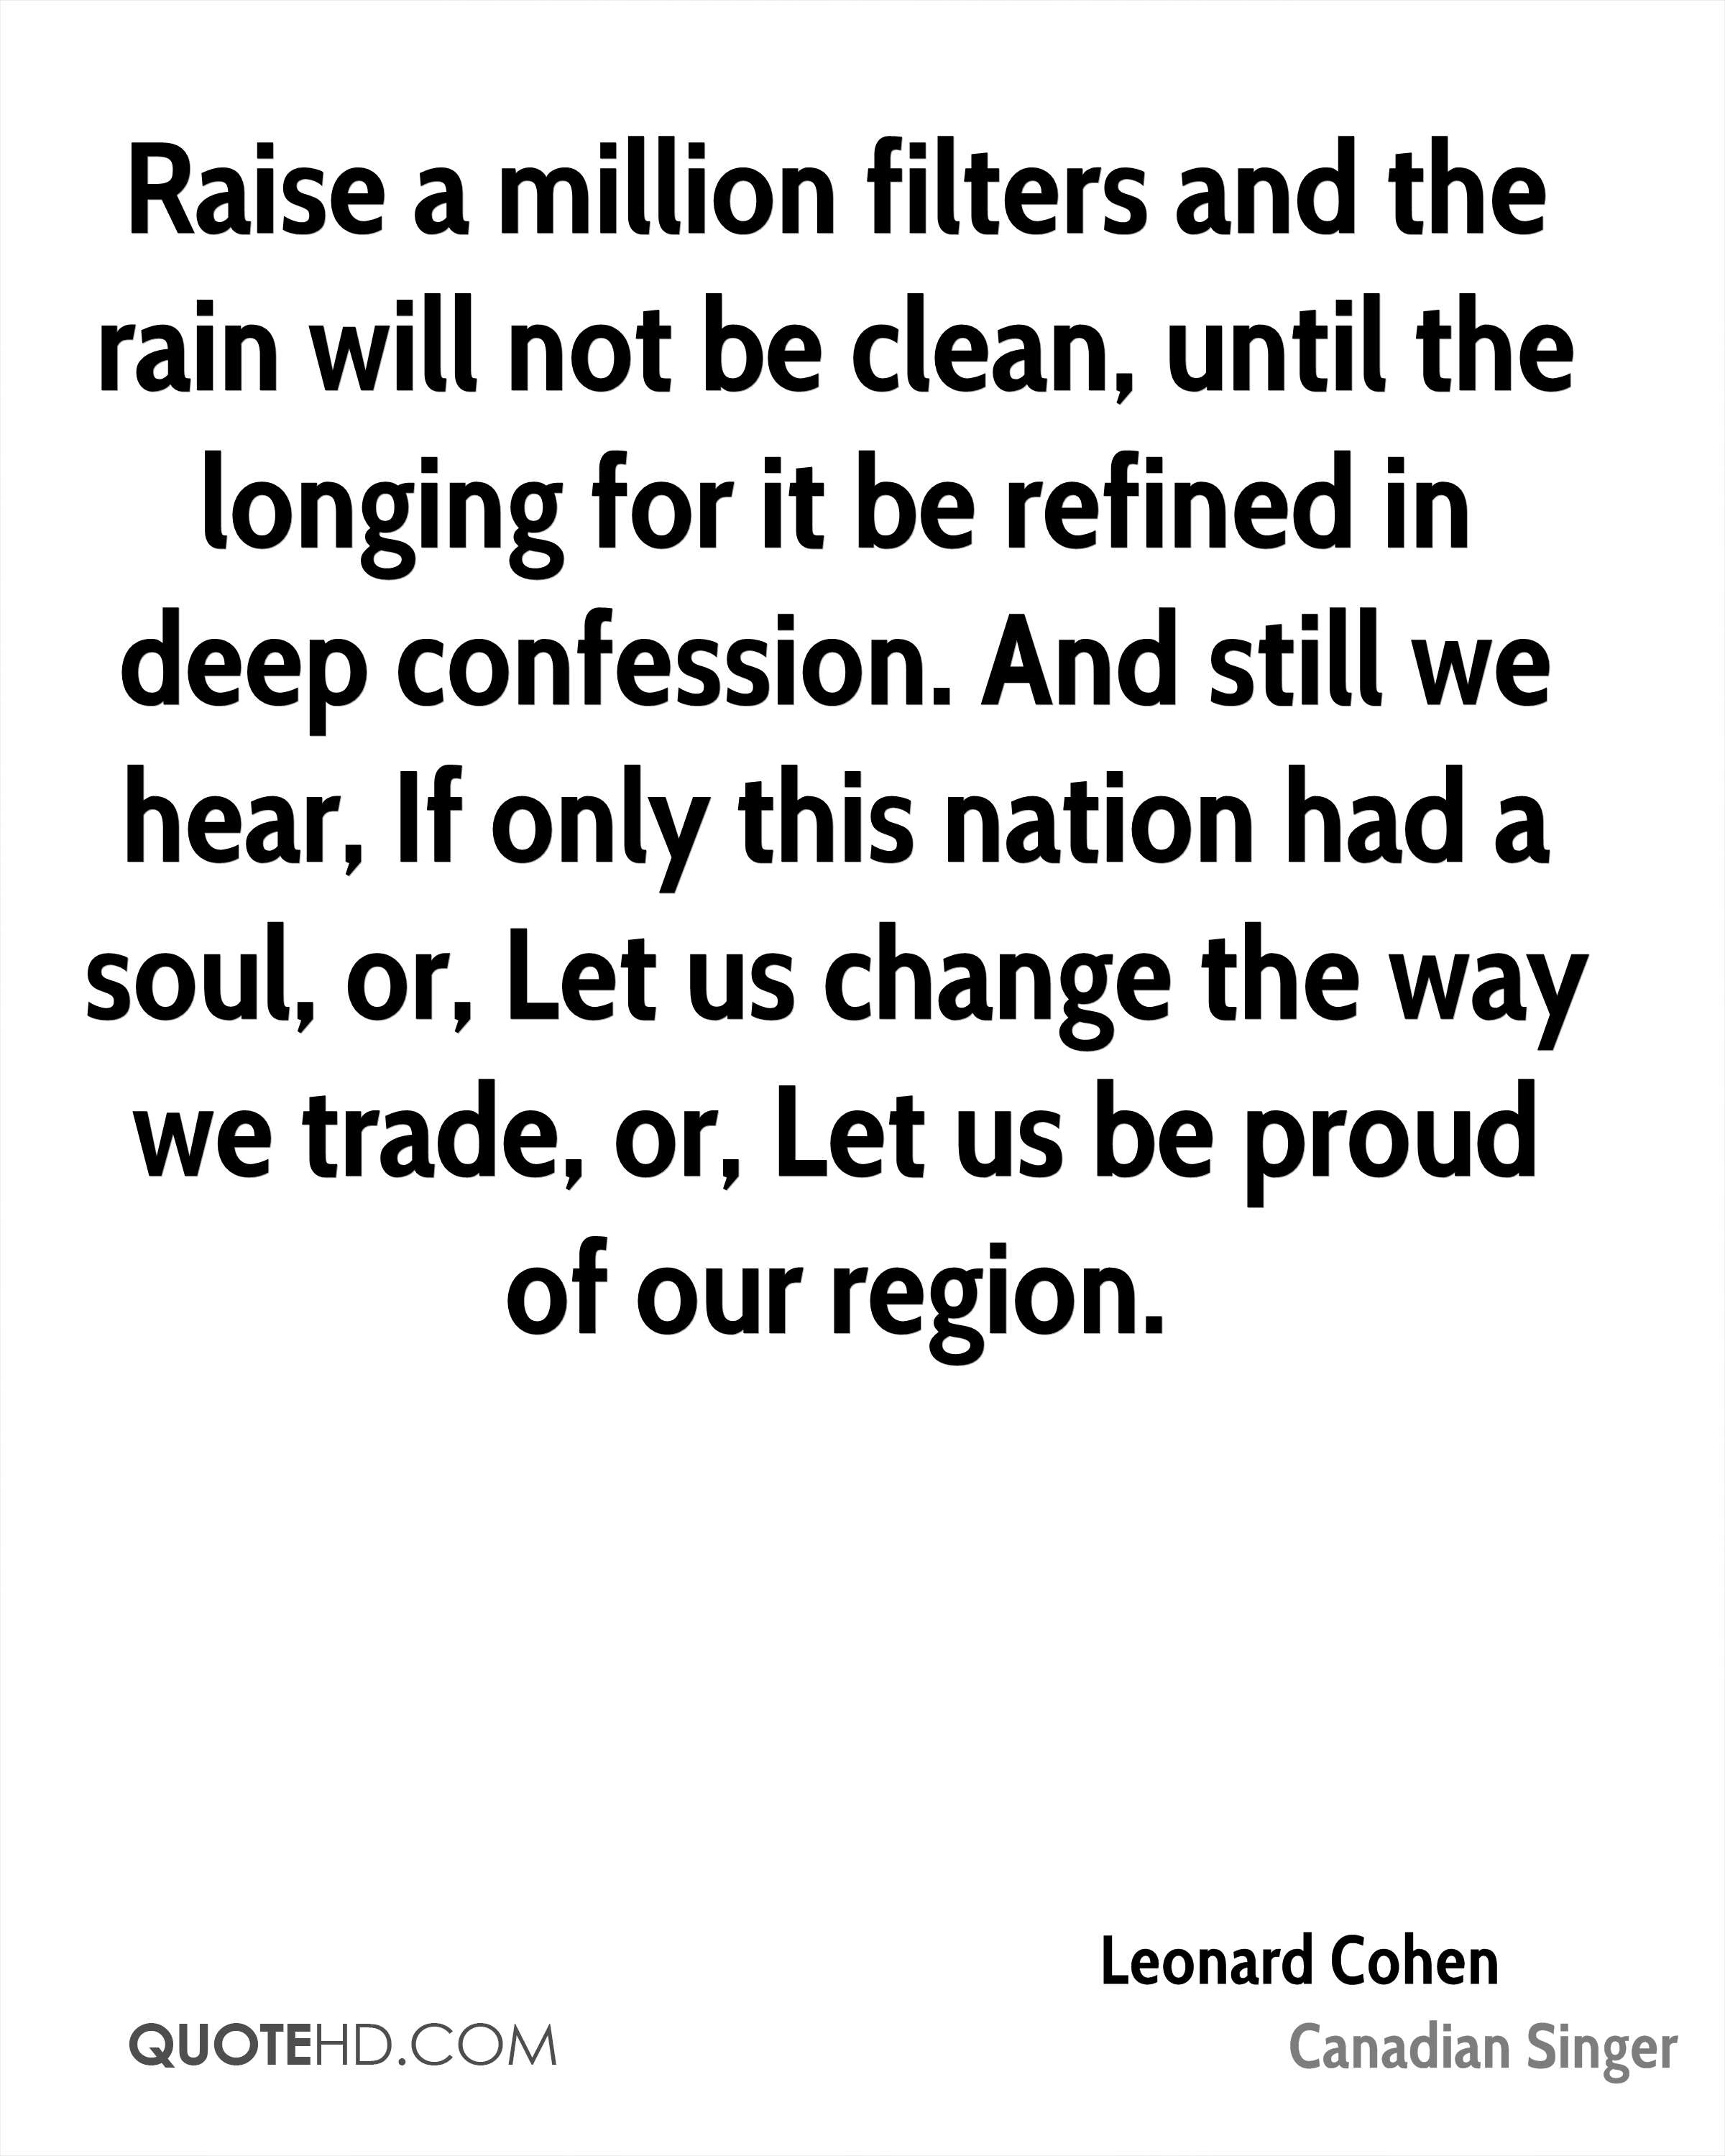 Raise a million filters and the rain will not be clean, until the longing for it be refined in deep confession. And still we hear, If only this nation had a soul, or, Let us change the way we trade, or, Let us be proud of our region.